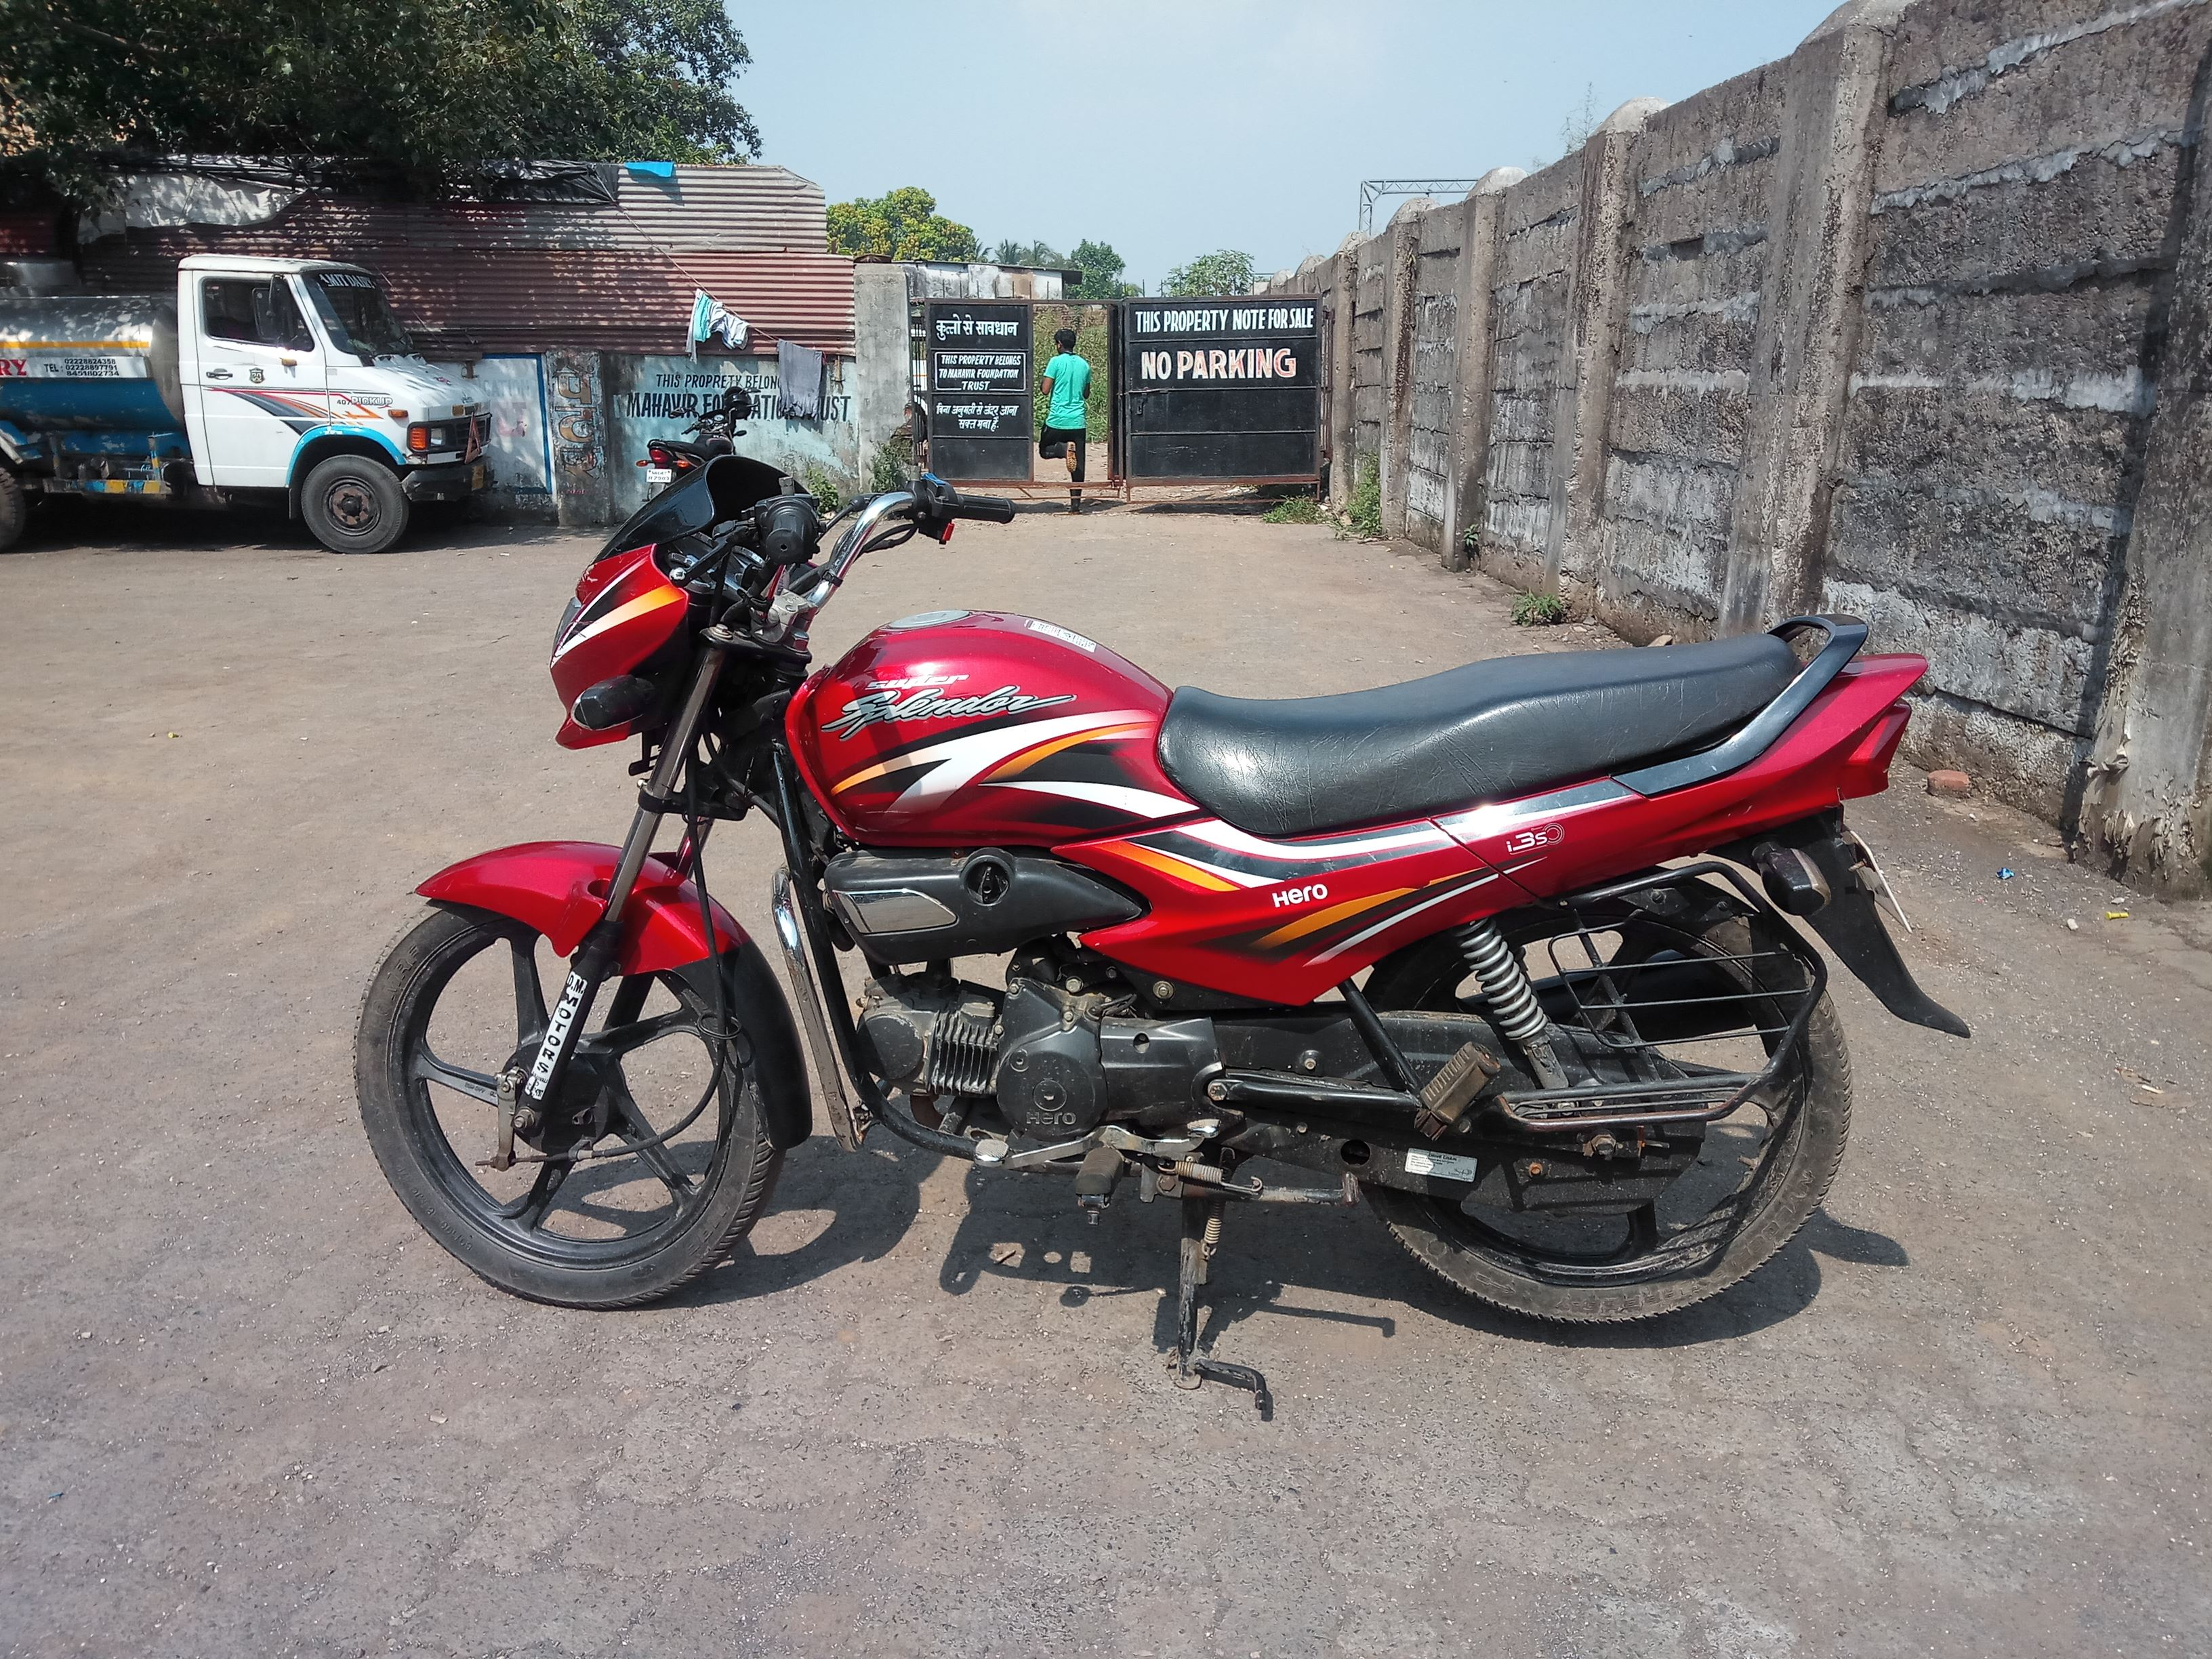 2017 Used Hero Super Splendor STANDARD